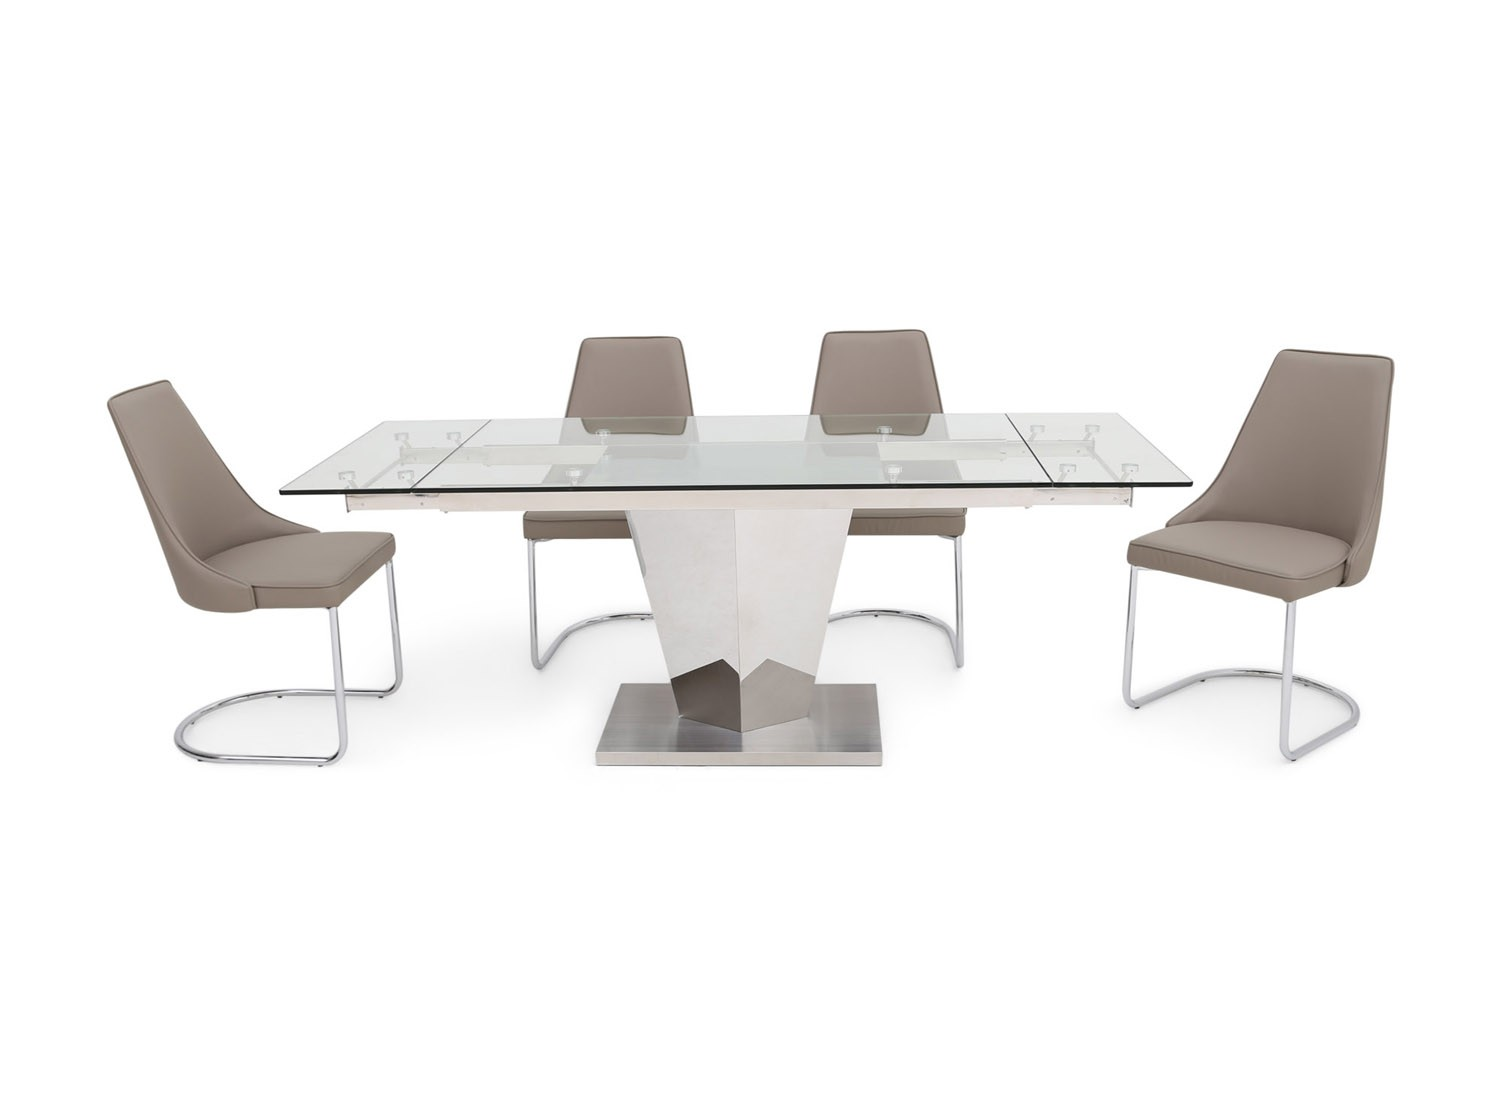 https://www.firstfurniture.co.uk/pub/media/catalog/product/i/s/isabella_dining_table_mya_chair_taupe_open_3.jpg